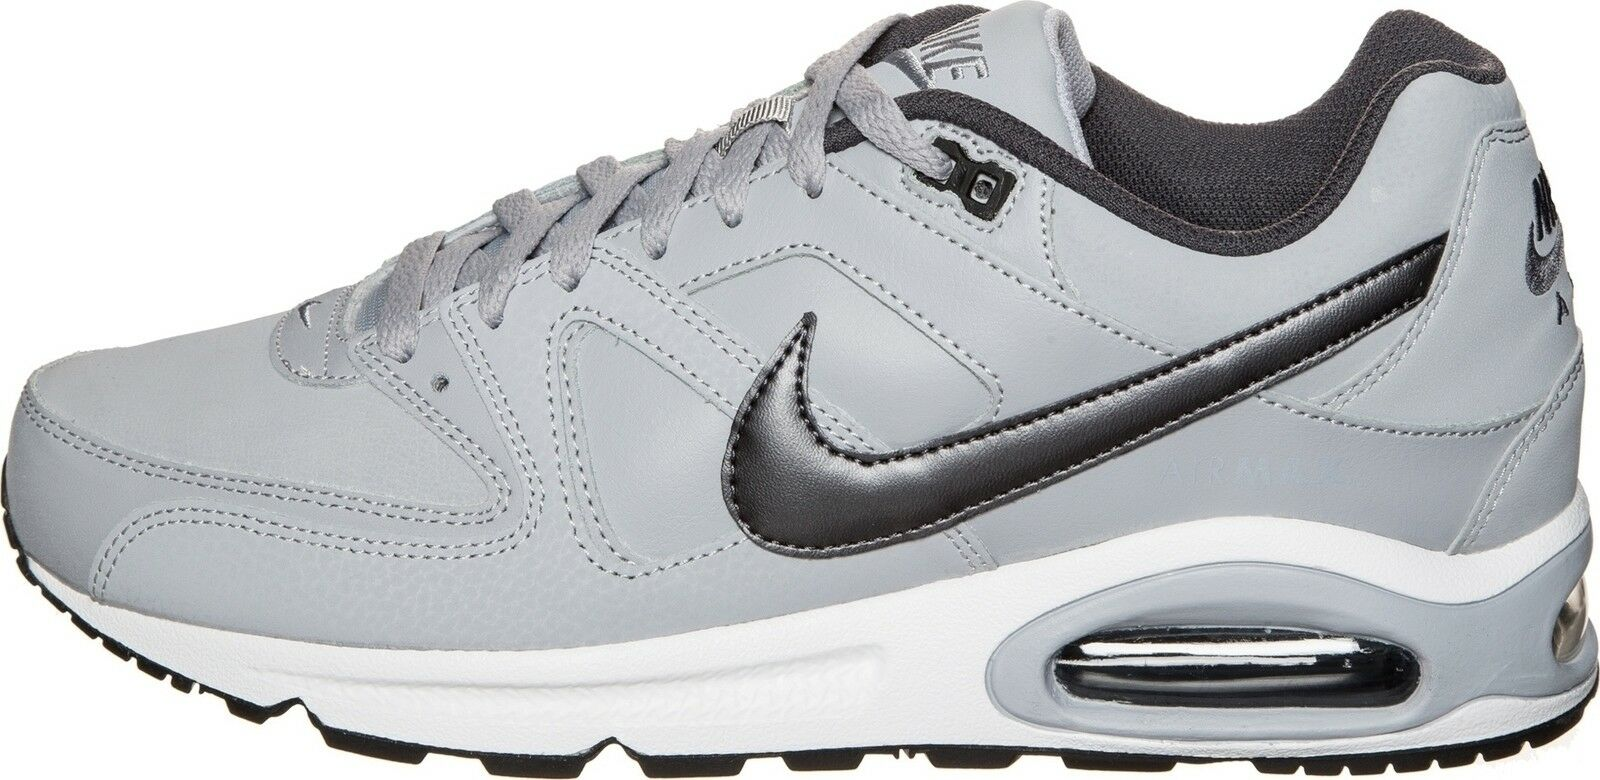 promo code 31a20 07811 where to buy nike air max command pelle nero bianca dark grigio bdd98 83485